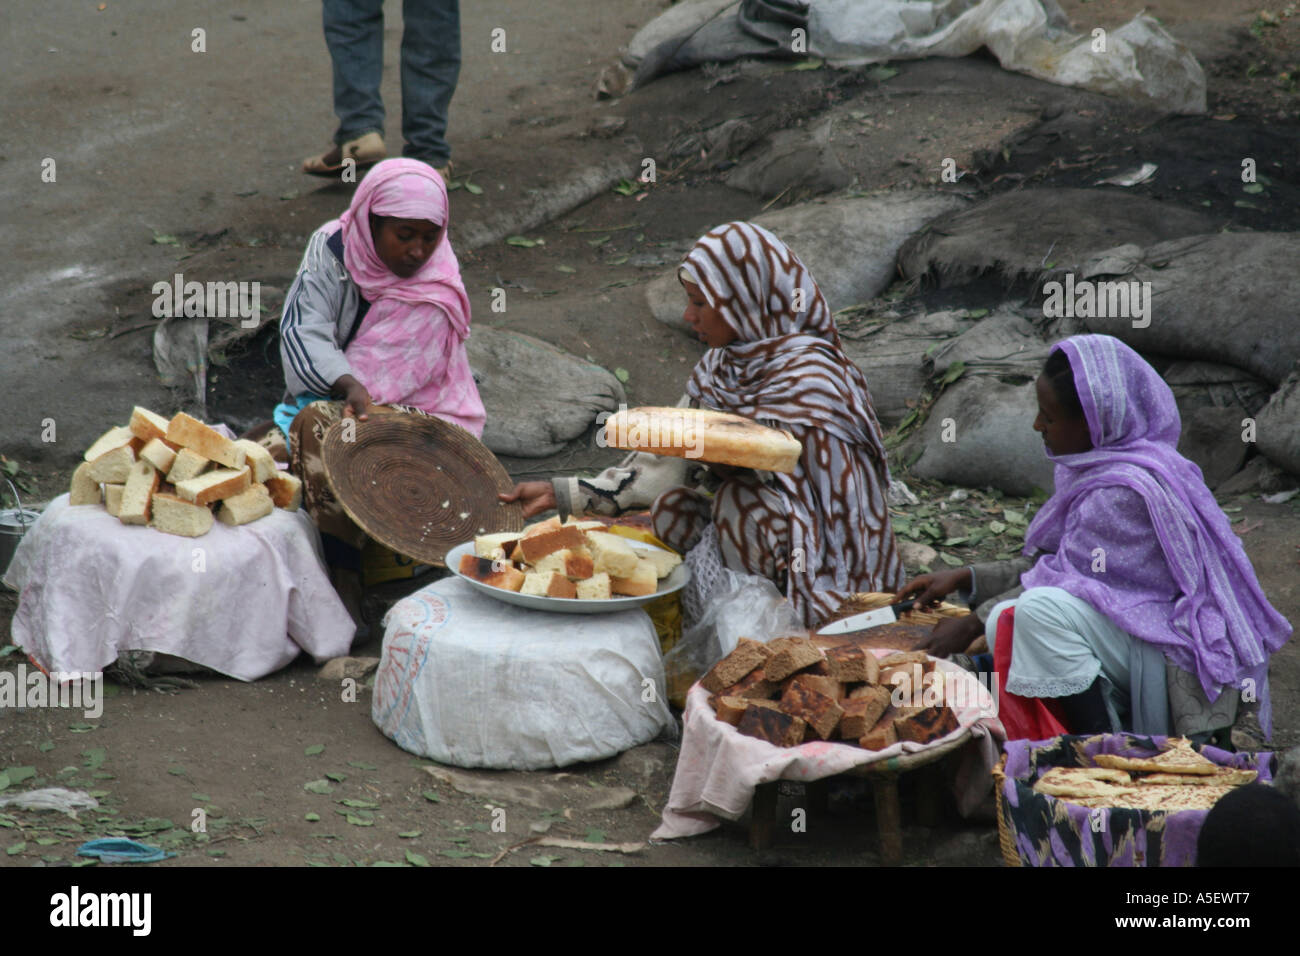 Harar, Ethiopia, women selling bread and cakes in the market Stock Photo